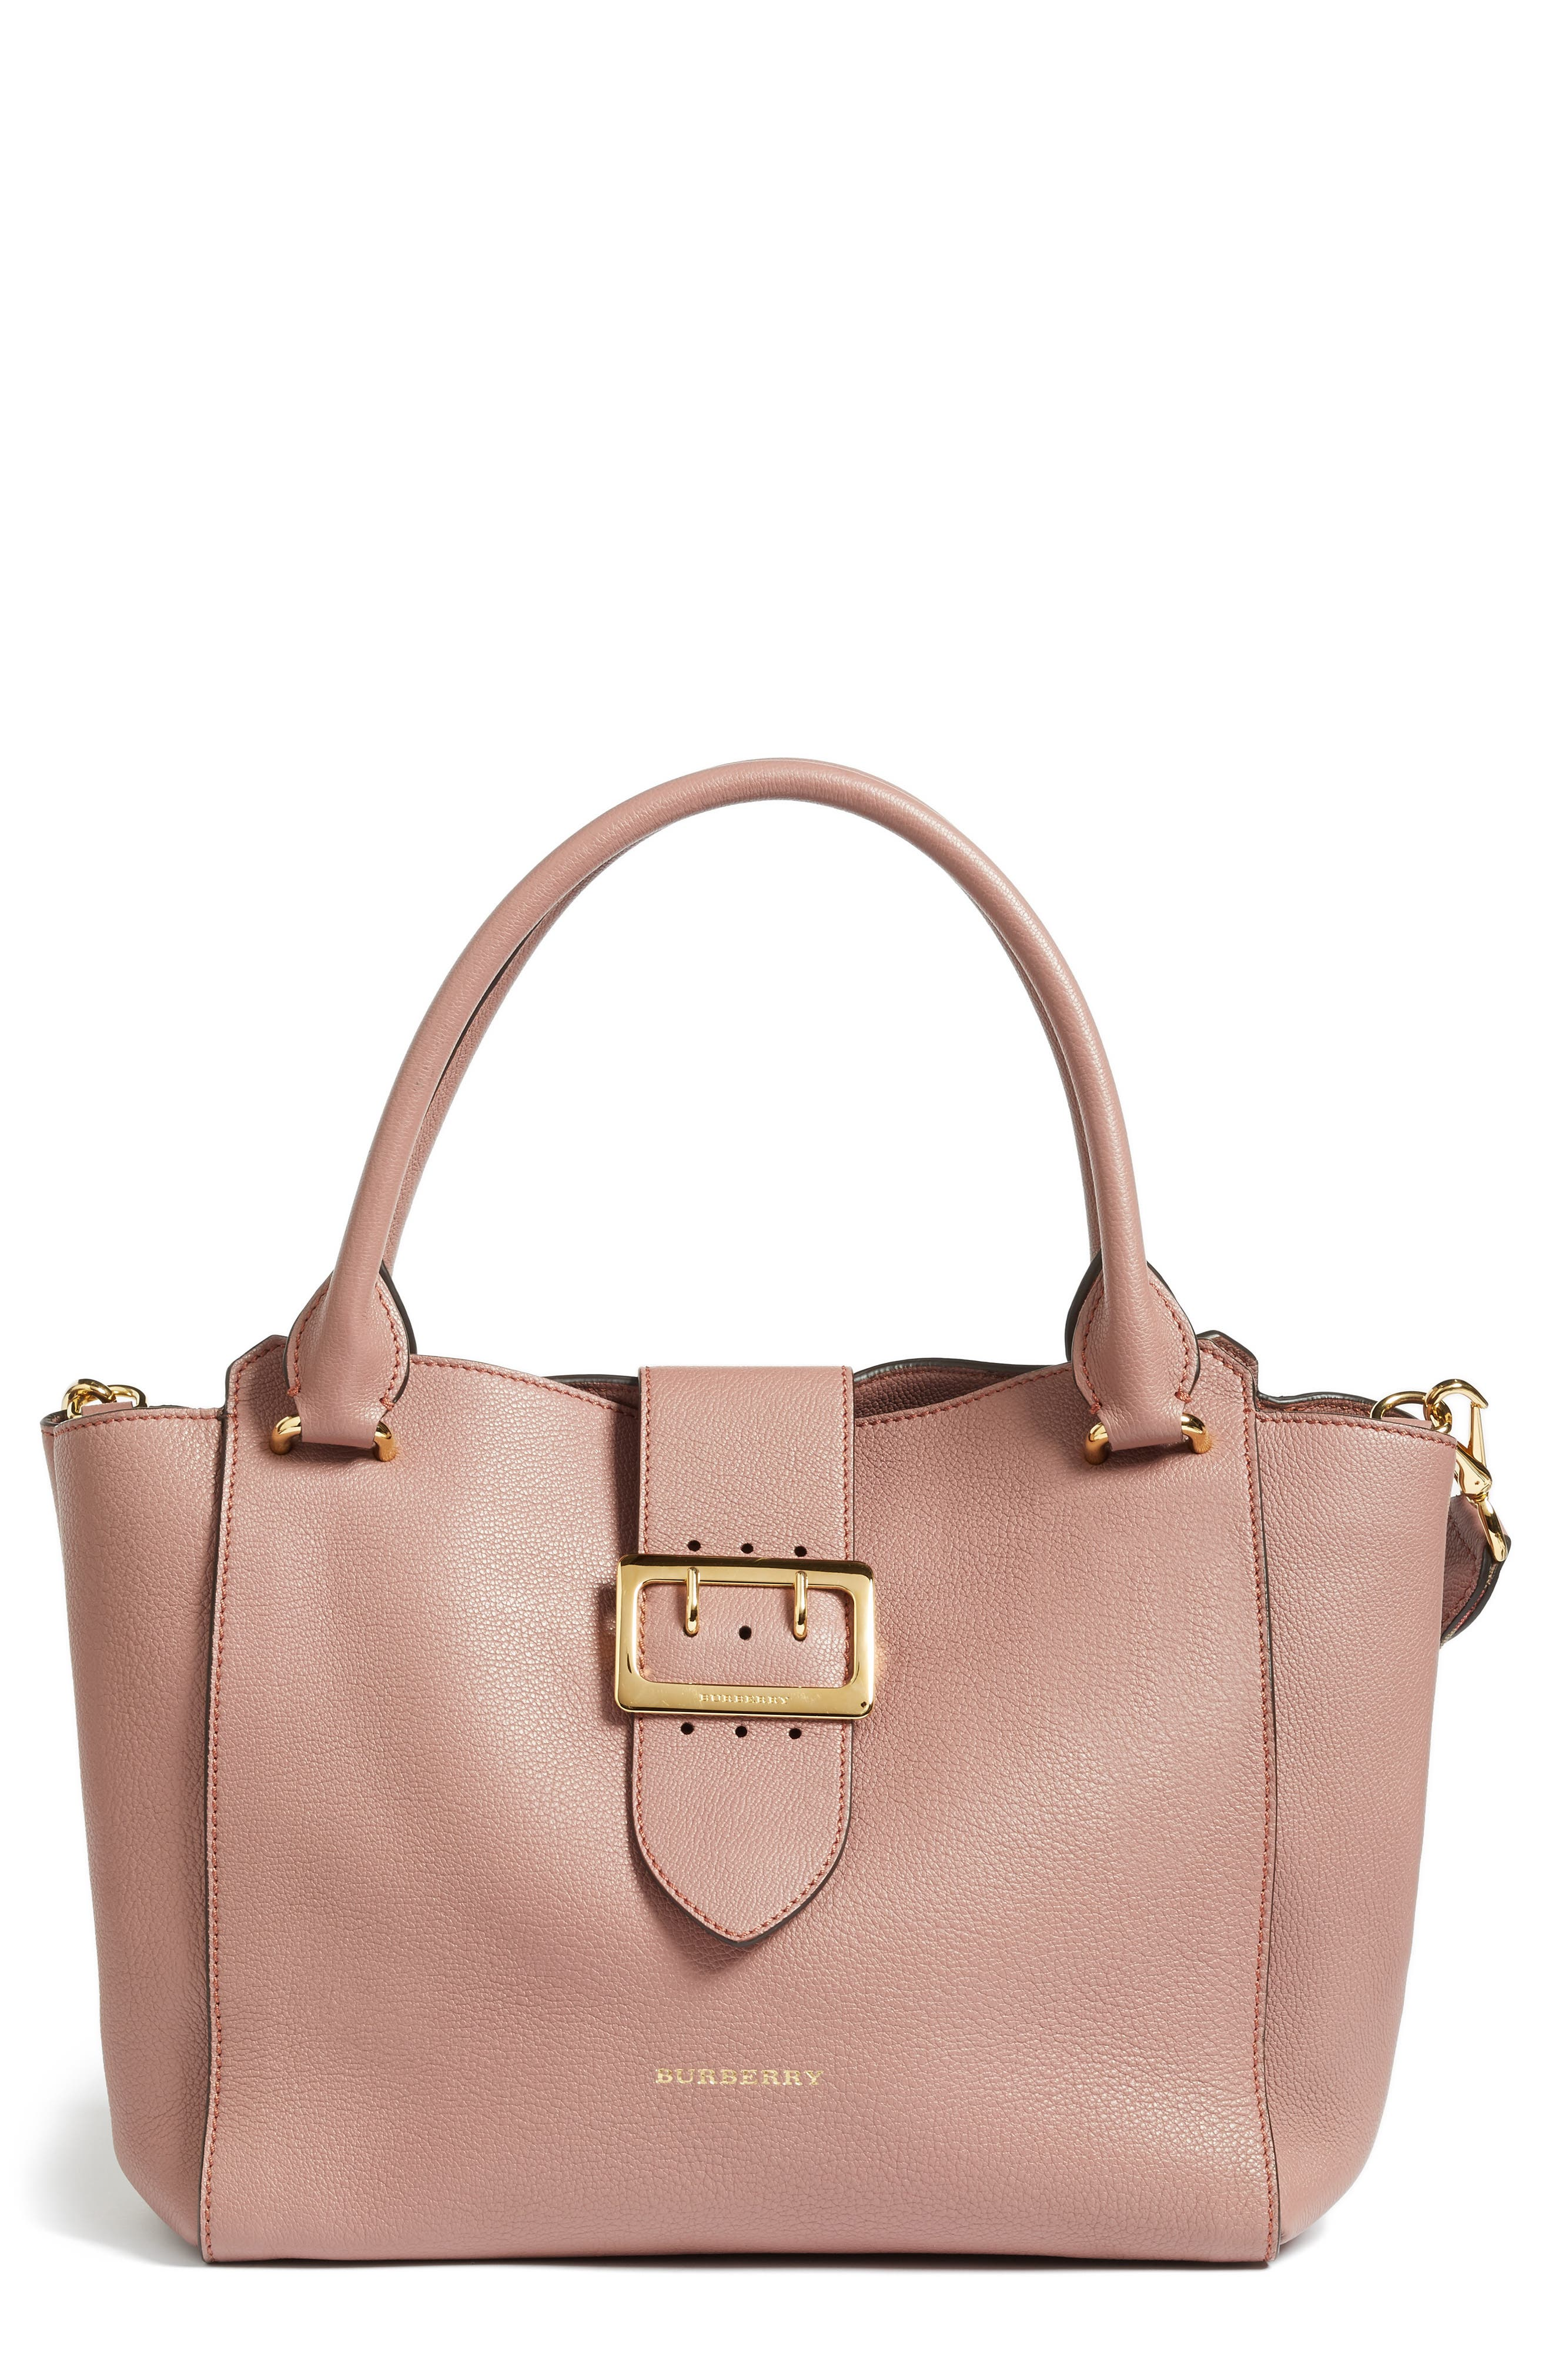 Burberry Medium Buckle Tote